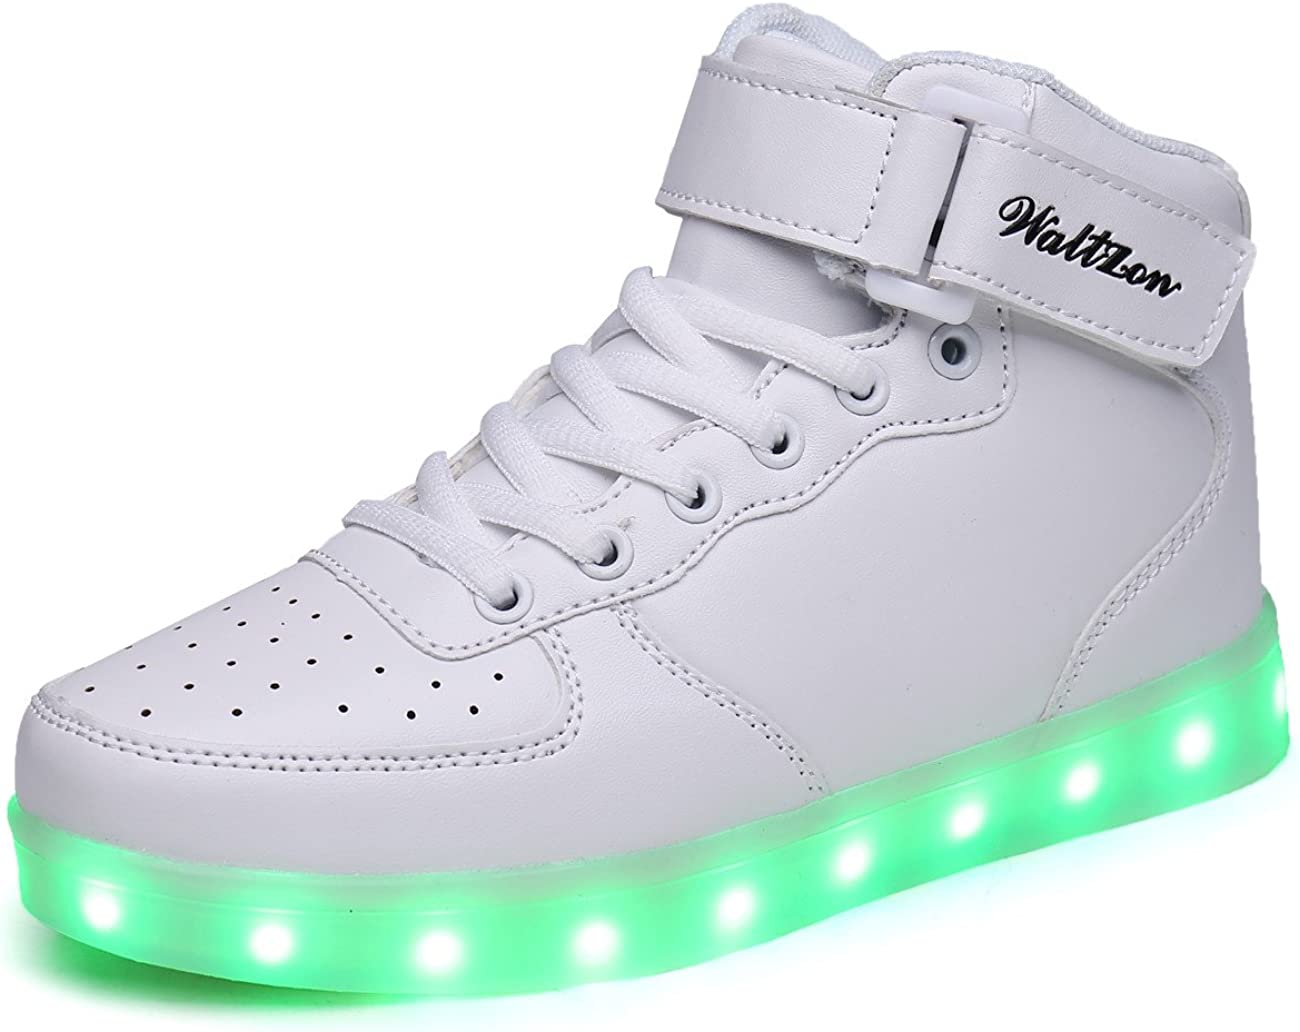 WaltZon High Top LED Shoes Light Up Shoes for Kids Boys Girls WZ6363-1White31